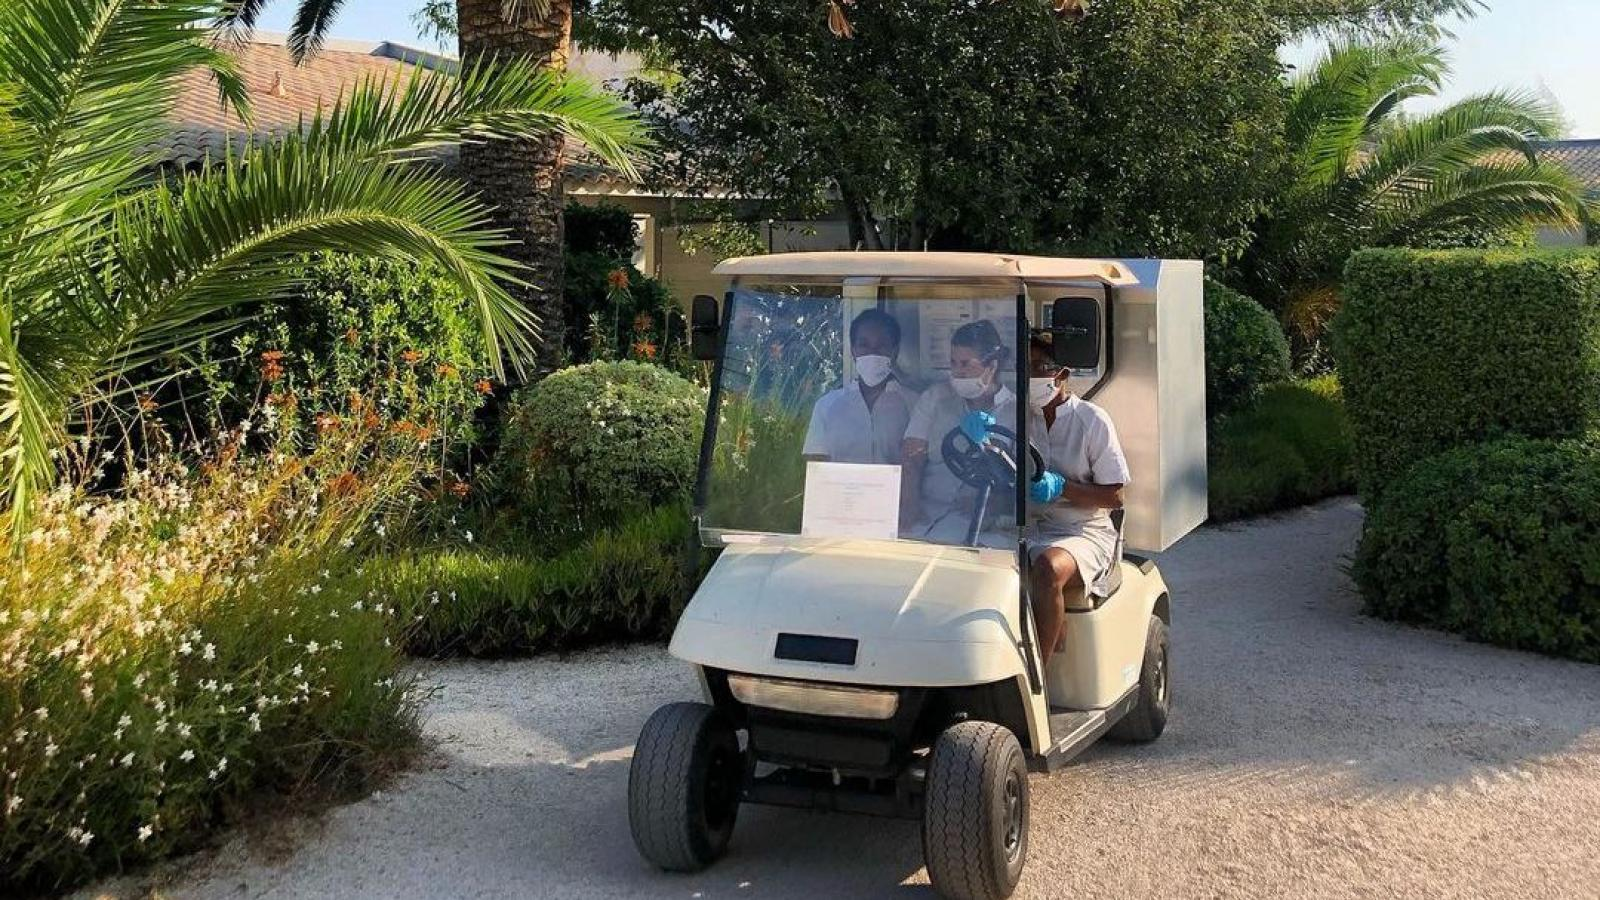 Your Hotel Sezz Saint-Tropez stands up to the health crisis